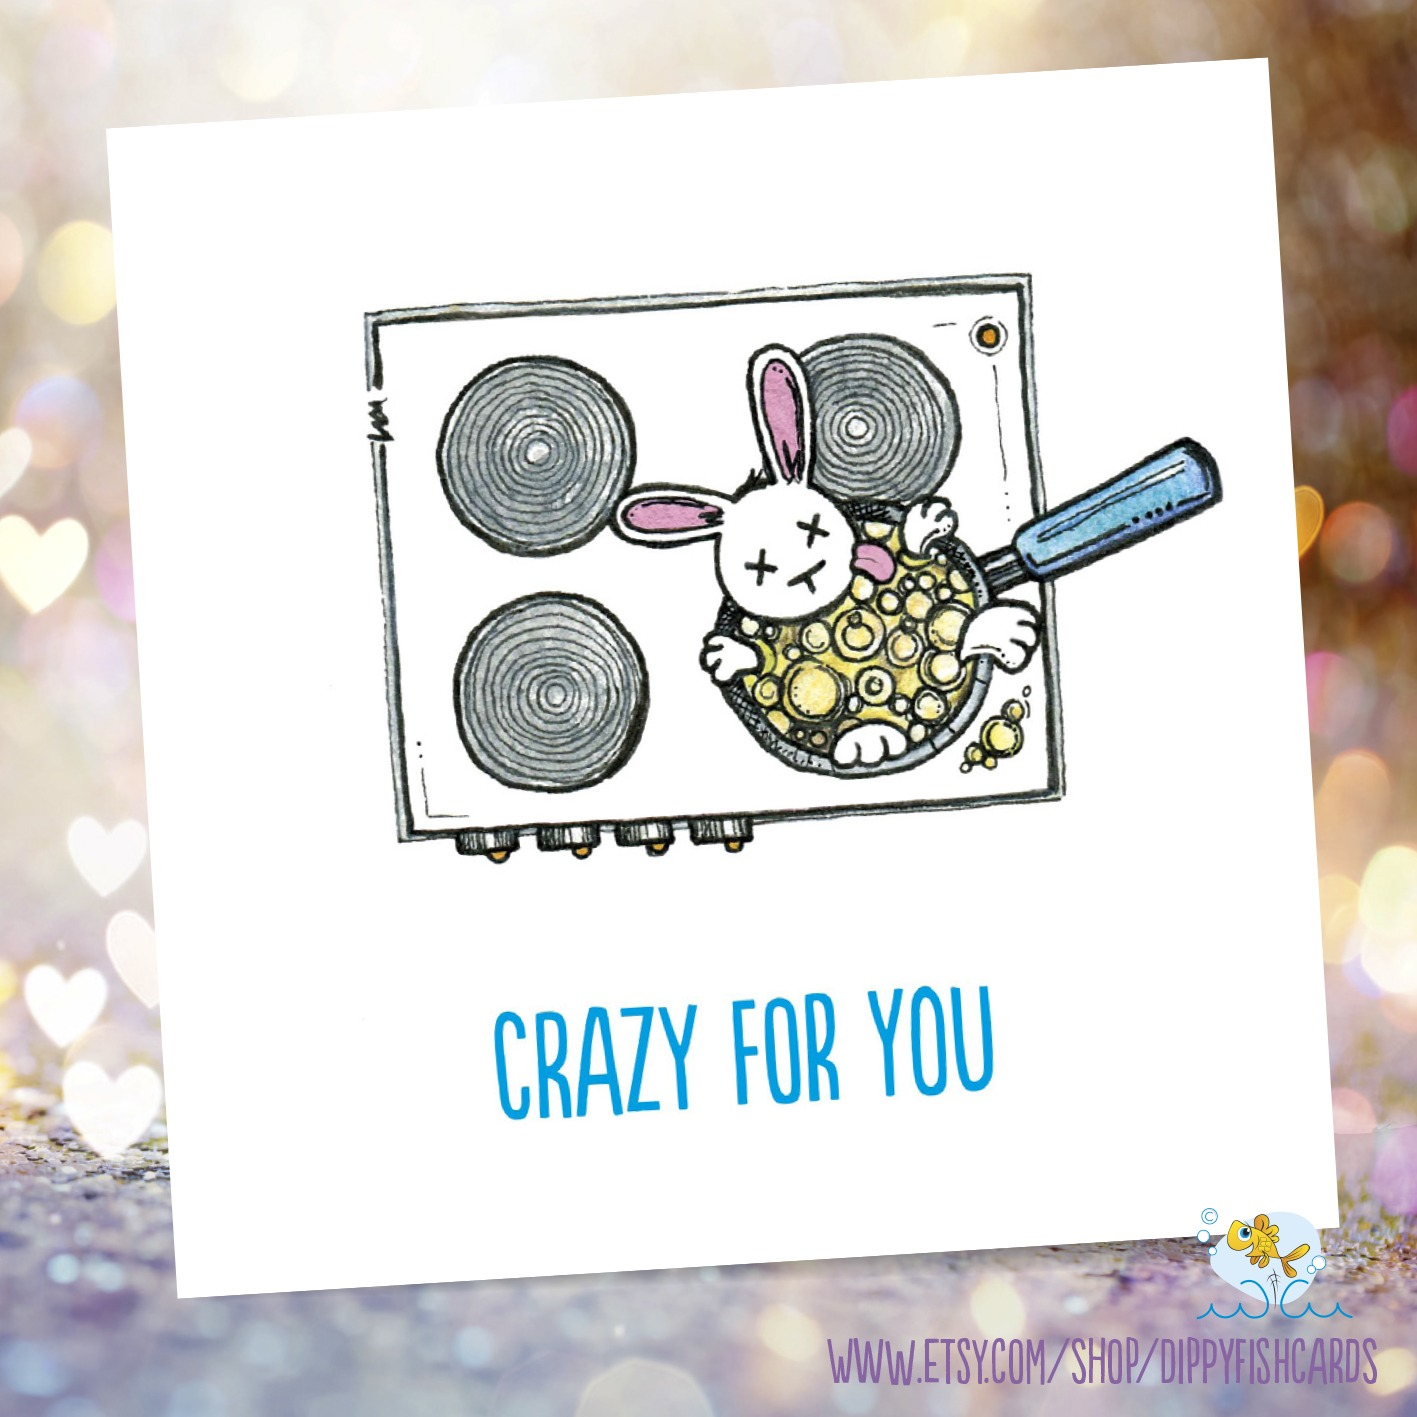 Dippyfish Cards - Valentine's Day, crazy for you/bunny boiler